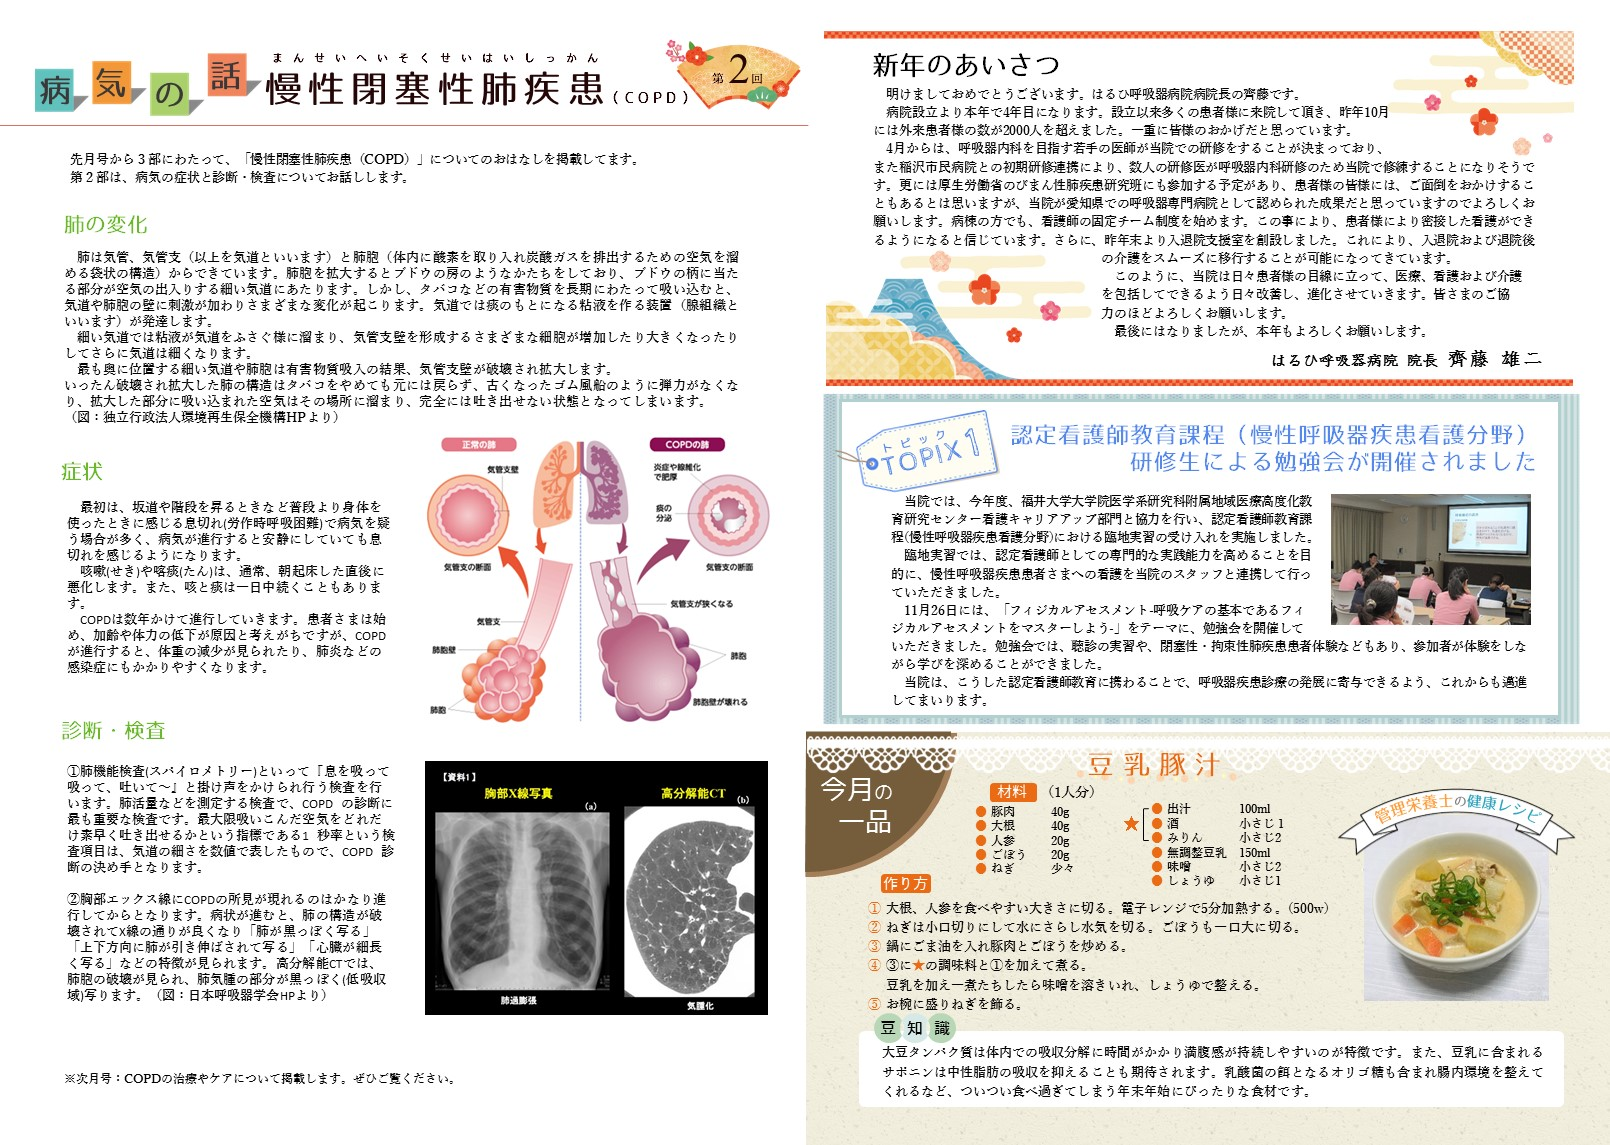 201901COPD2_2